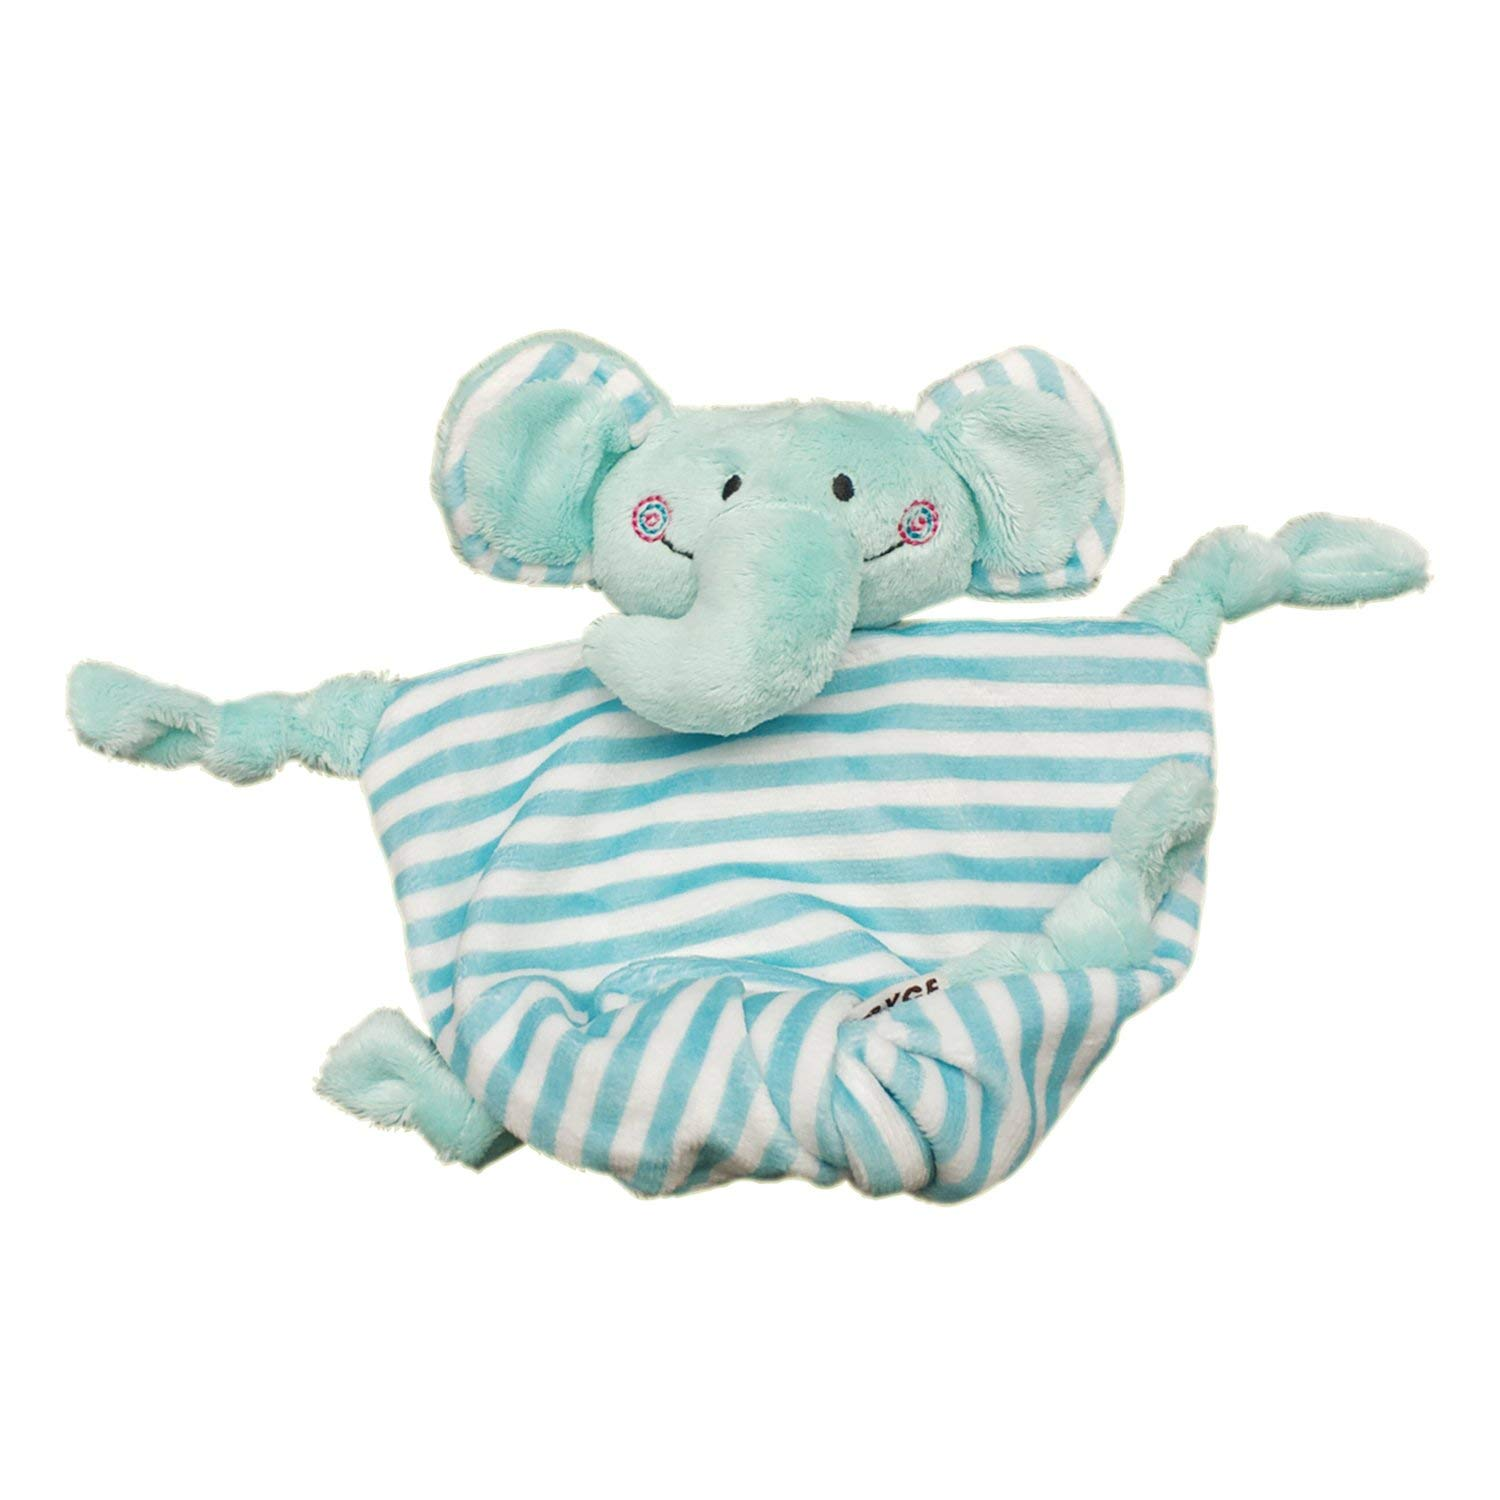 "Inchant Baby Security Blankie, Lovey Soother Security Blanket Stuffed Animal Plush Blanket 7.5"" x 6.7"" Comforter Blanket For Baby Infant (Blue Elephant)"